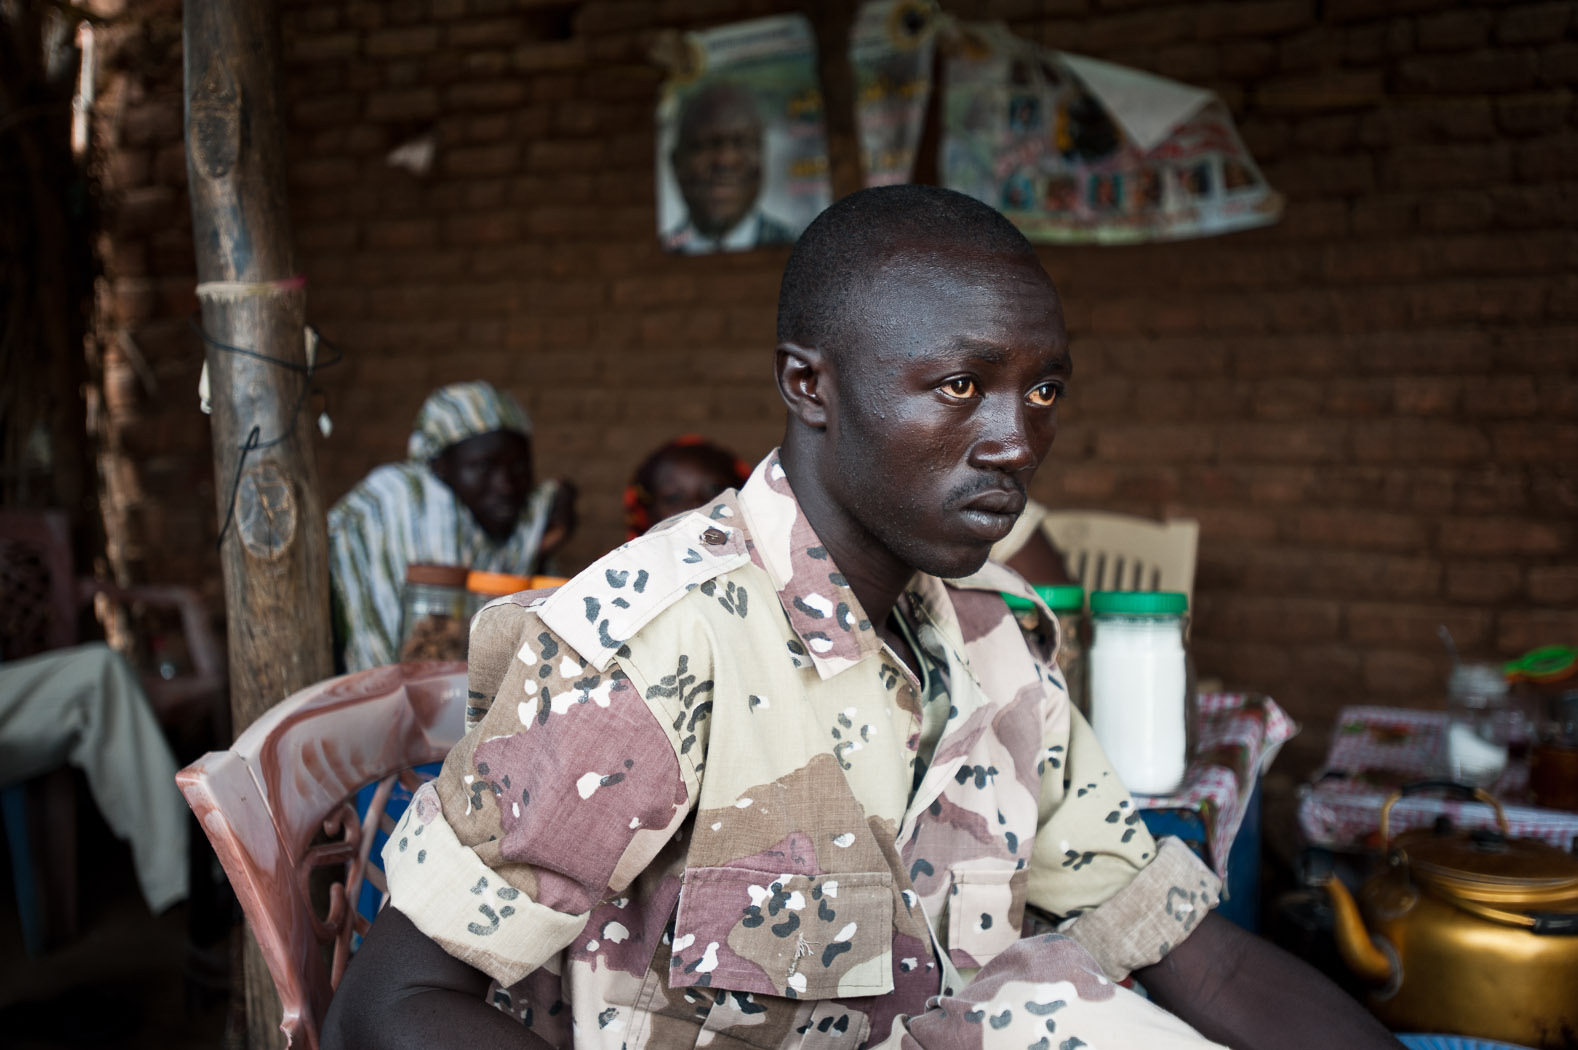 """Cola Kuku Codi, a former SPLM-North fighter, sits in a coffee-house in Kauda, the base of the SPLM-N in South Kordofan. He is no longer fighting, but staying to protect his village. But he is prepared to go back to fight. """"Now I am ready if they want to take me on a mission"""" he says, adding """"I don't think peace will happen again with these people [the Khartoum government]."""""""